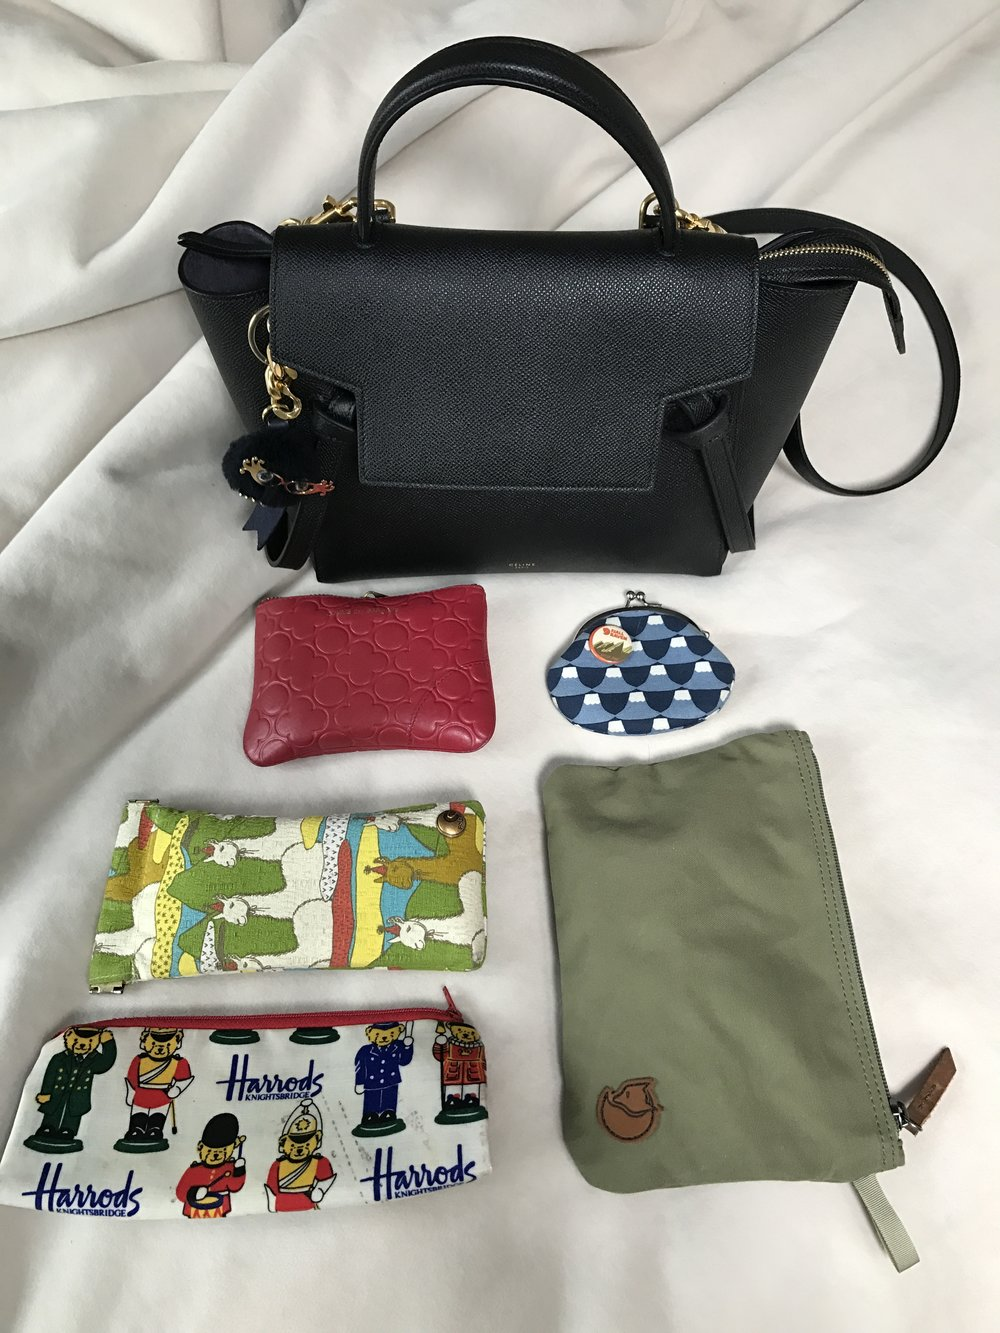 My usual daily items in my bag (wallet, coin purse, sunglasses, and several pouches for essentials)